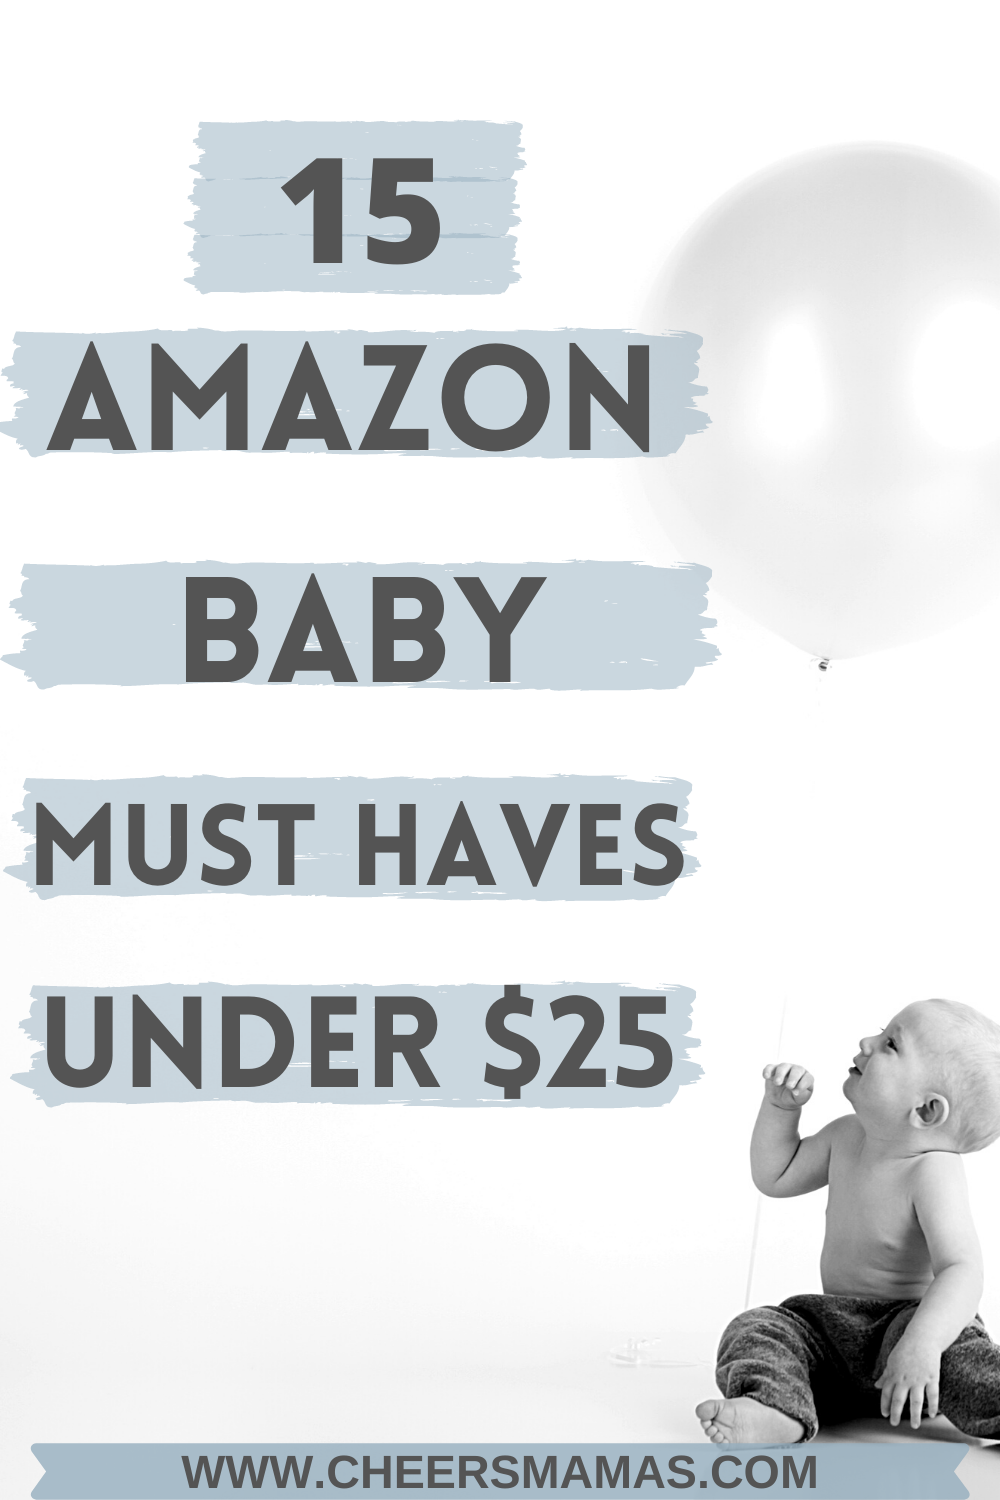 Hello Mamas! Here is a round of amazon baby must haves just under $25 | Amazon baby | #Amazonbaby # amazonmusthaves #amazonbabyregistry #babyessentials #babymusthaves #firsttimemom